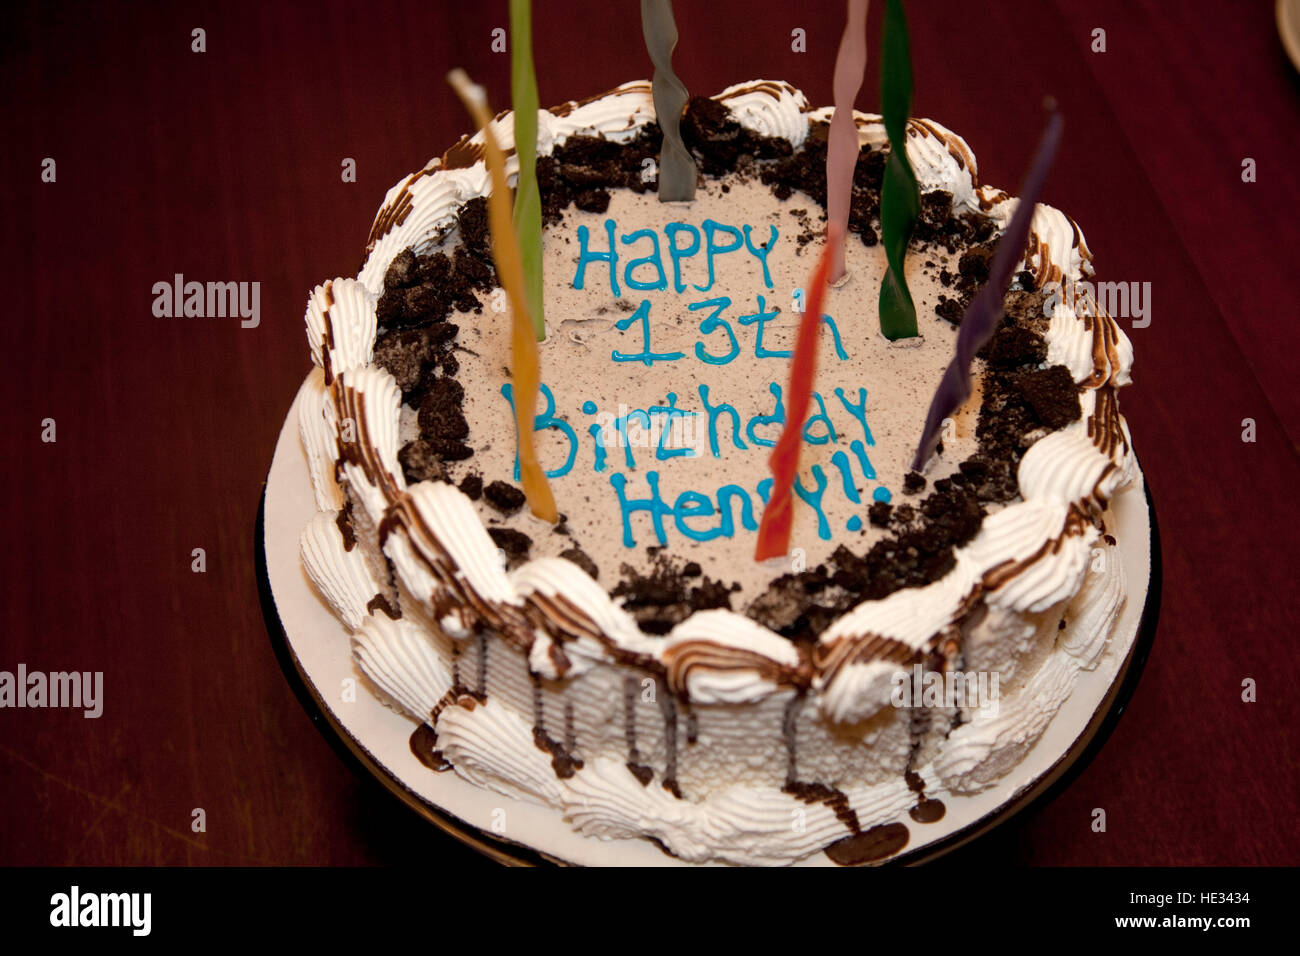 Decorative Happy Birthday Cake With Candles For A 13 Year Old Boy